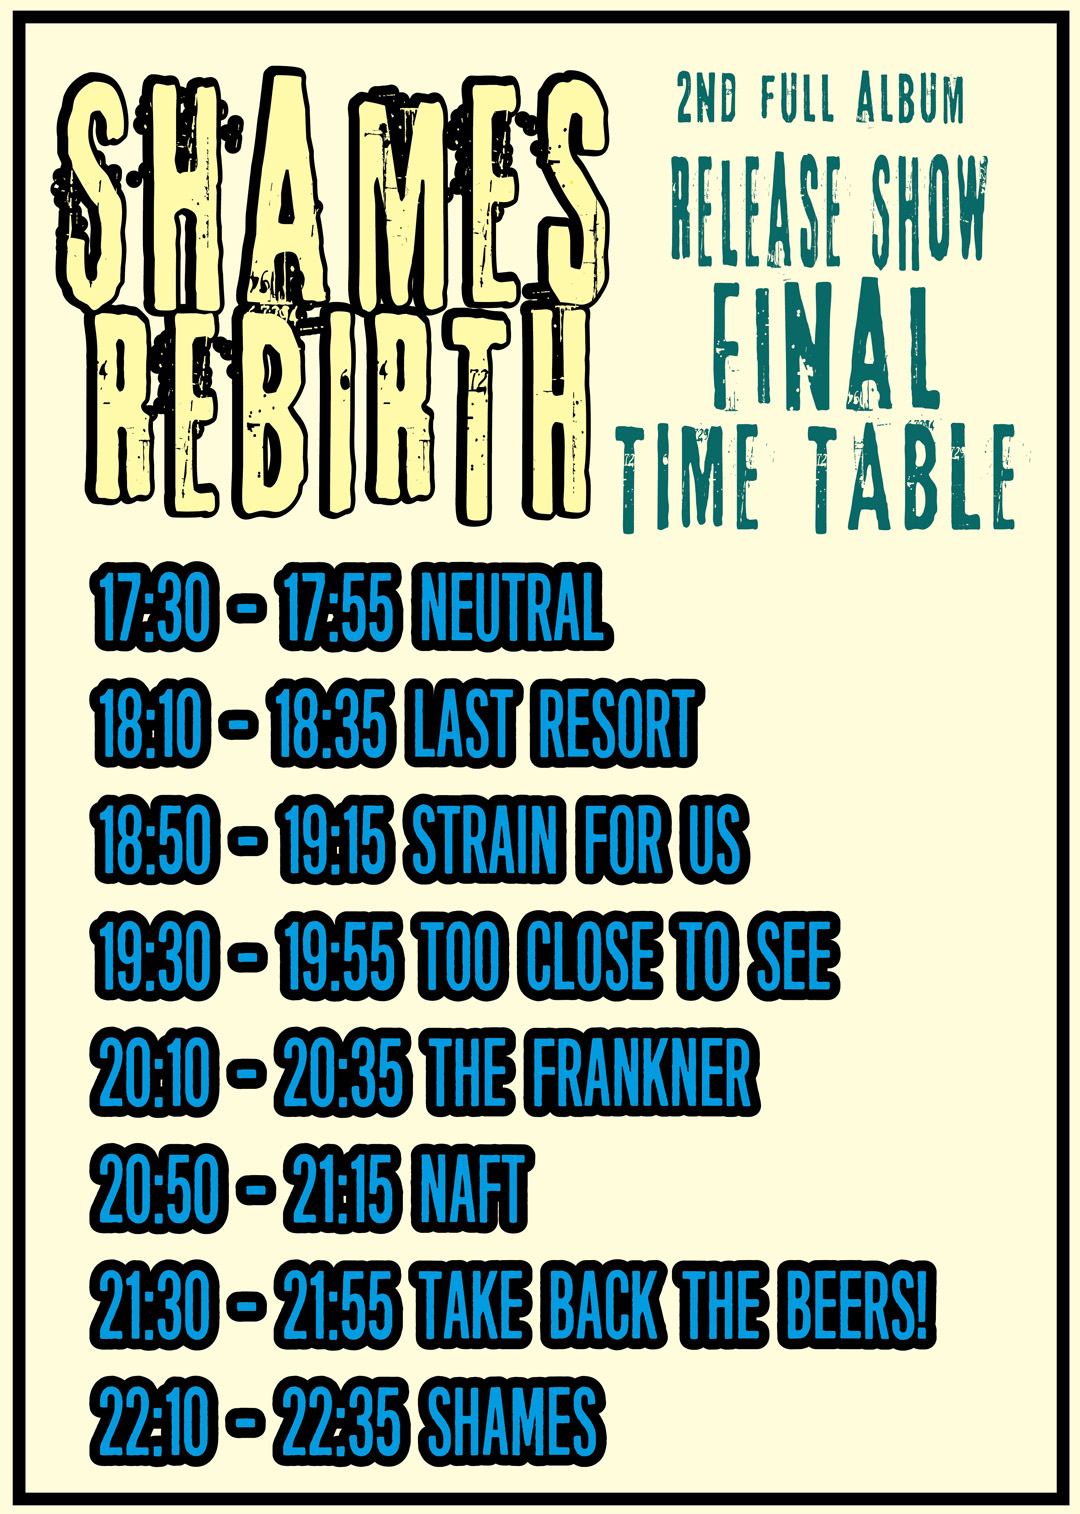 PLAY GROUND REBIRTH FINAL Time Table